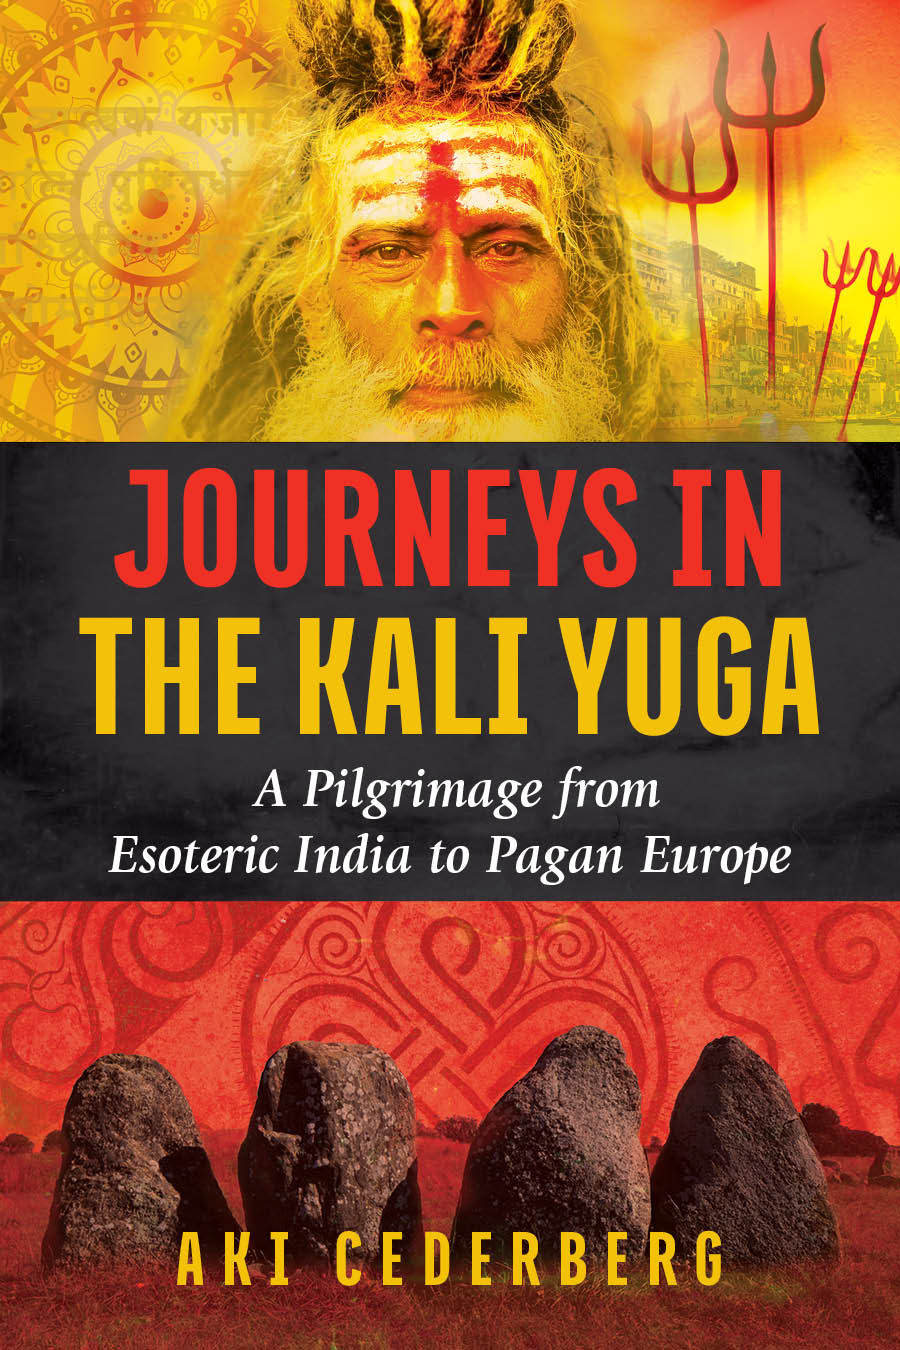 JOURNEYS IN THE KALI YUGA.jpg